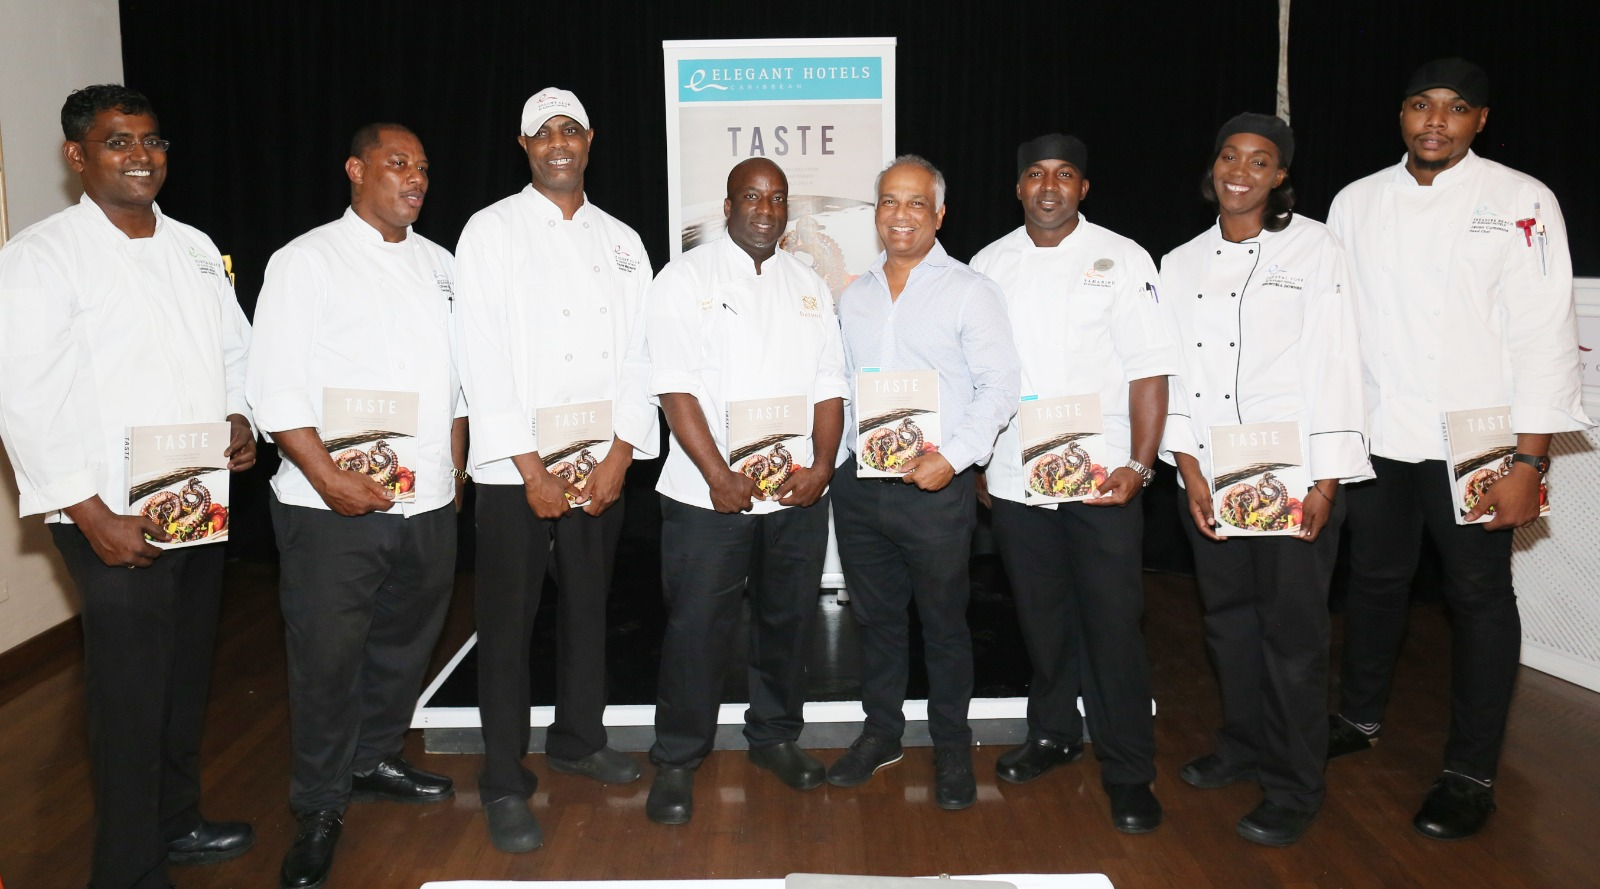 Elegant Hotels Group CEO Sunil Chatrani (centre) with the seven Executive Chefs featured TASTE, the company's first cookbook.